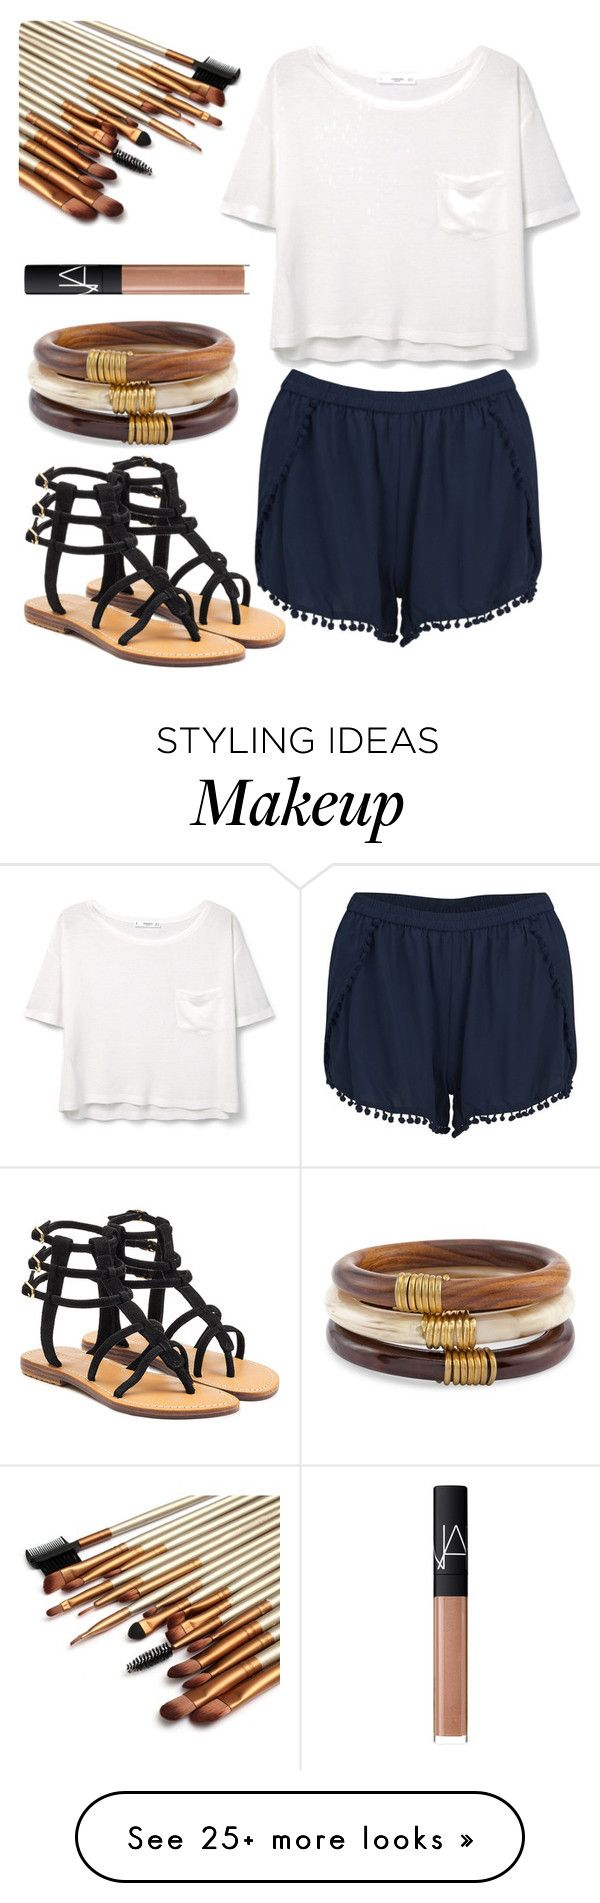 """""""Untitled#125"""" by angieleabourgeois on Polyvore featuring Mystique, MANGO, VILA, Chico's and NARS Cosmetics"""